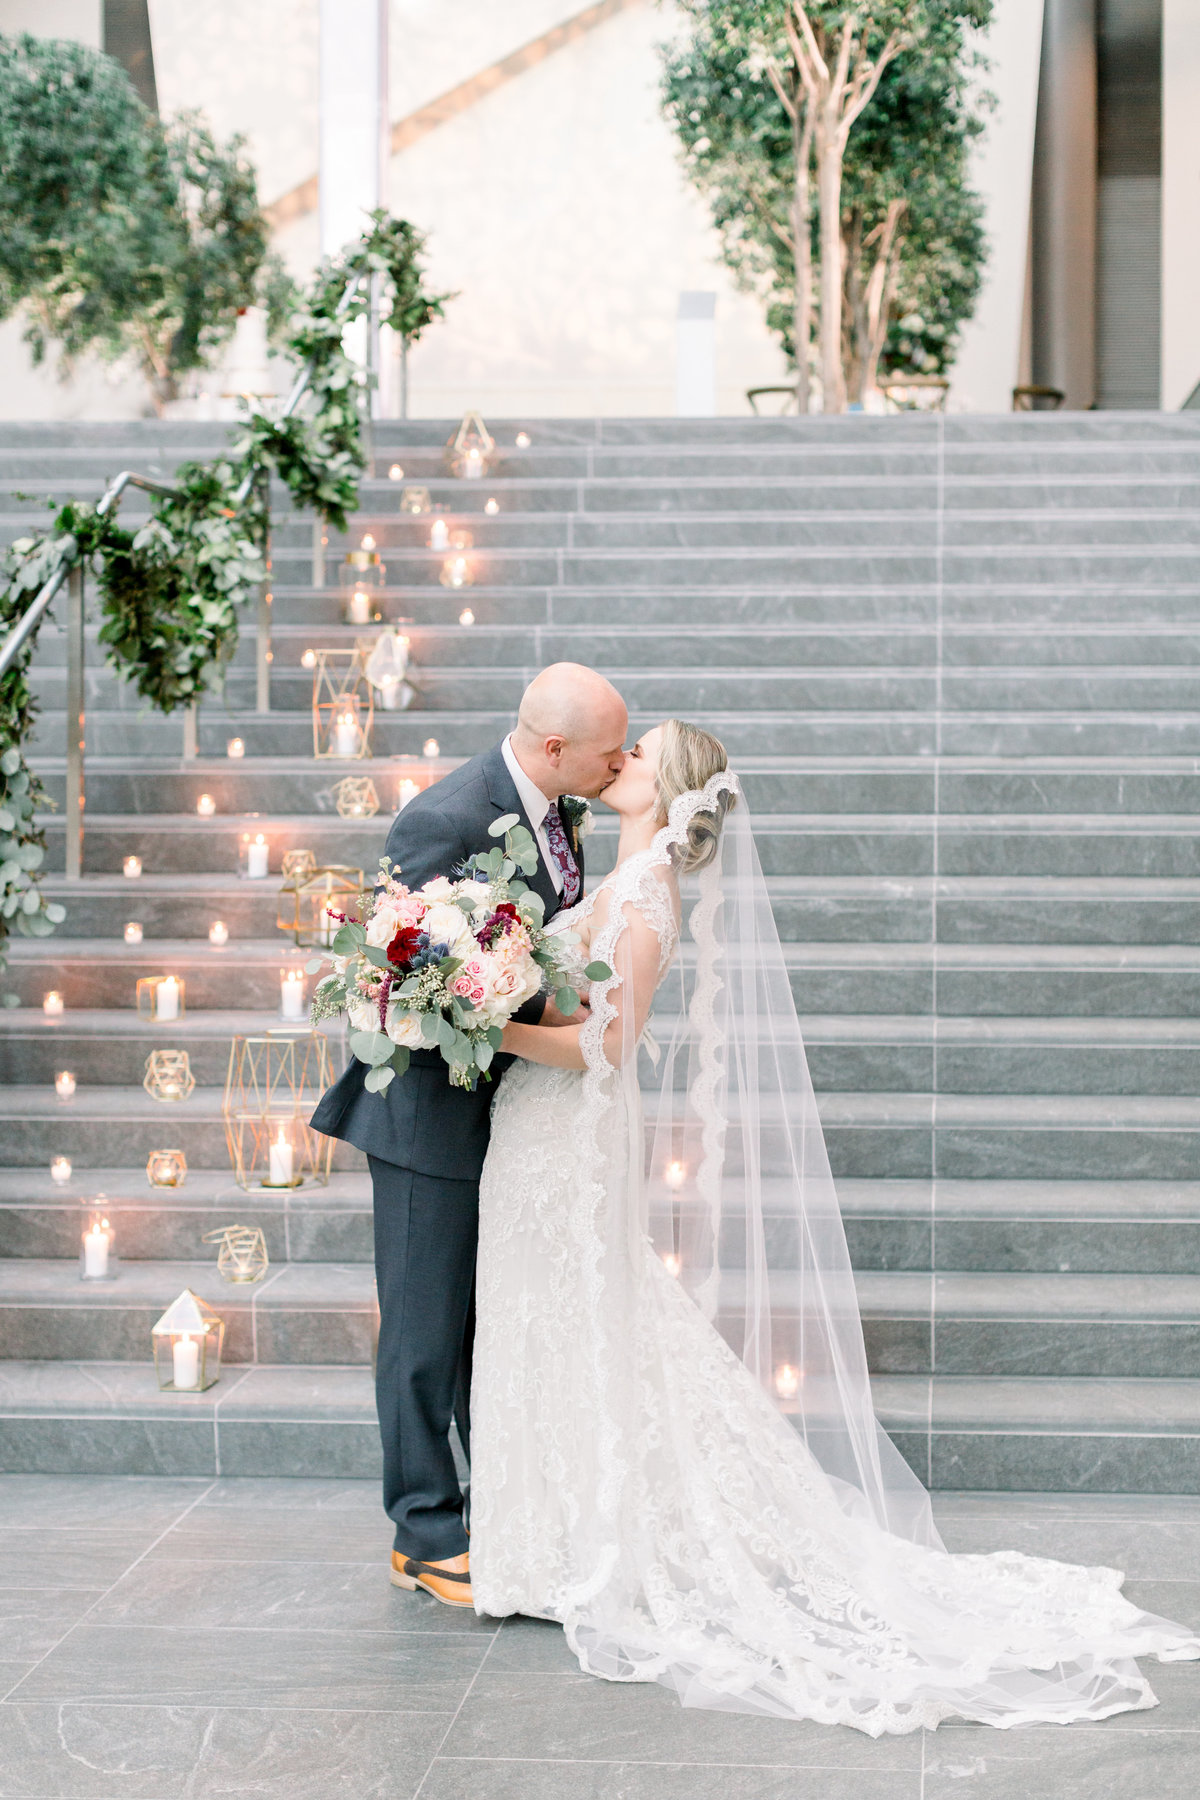 Ben and Brittany Married-Samantha Laffoon Photography-118